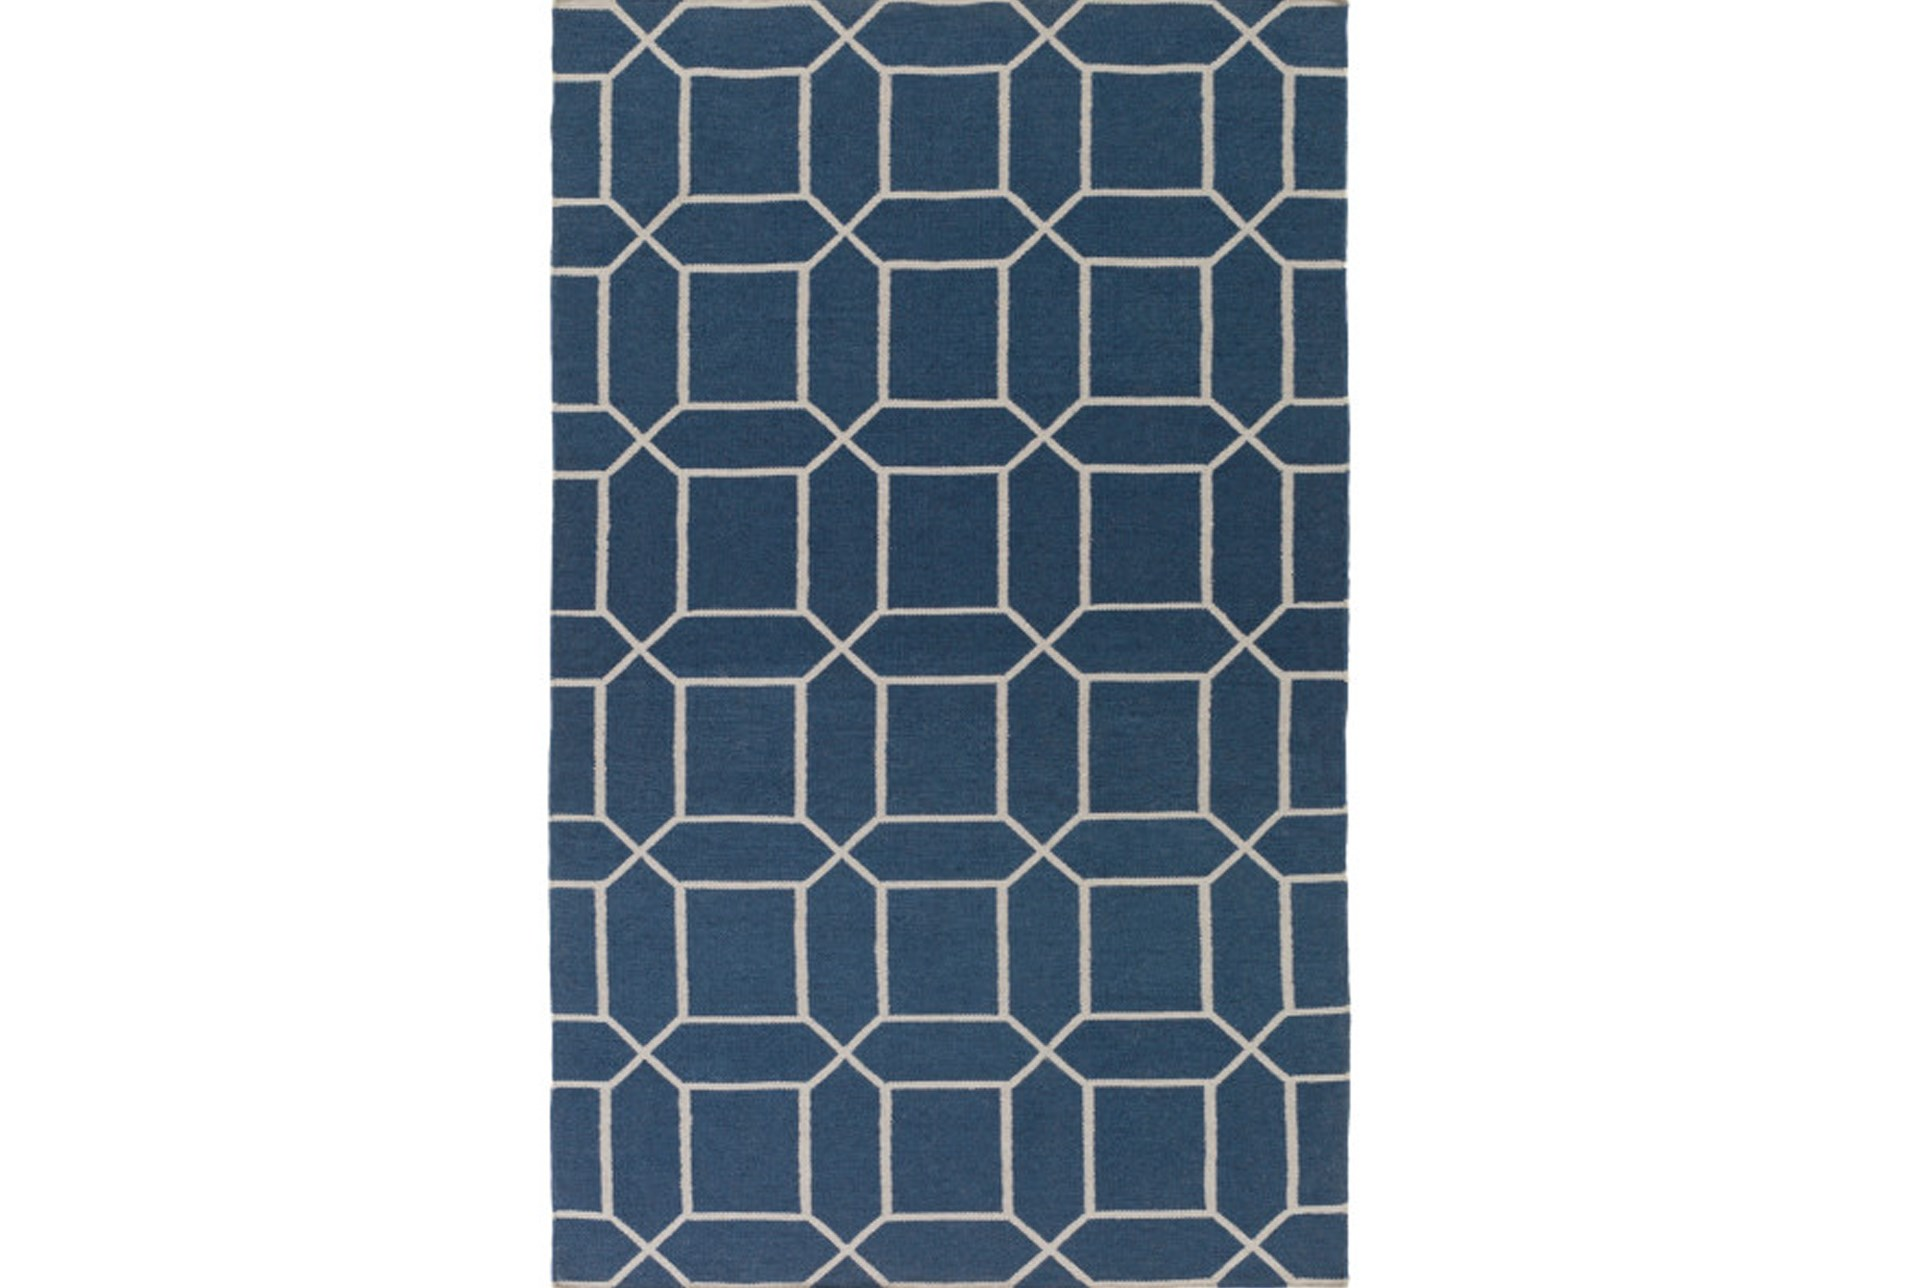 108x156 Rug Whitaker Navy Living Spaces